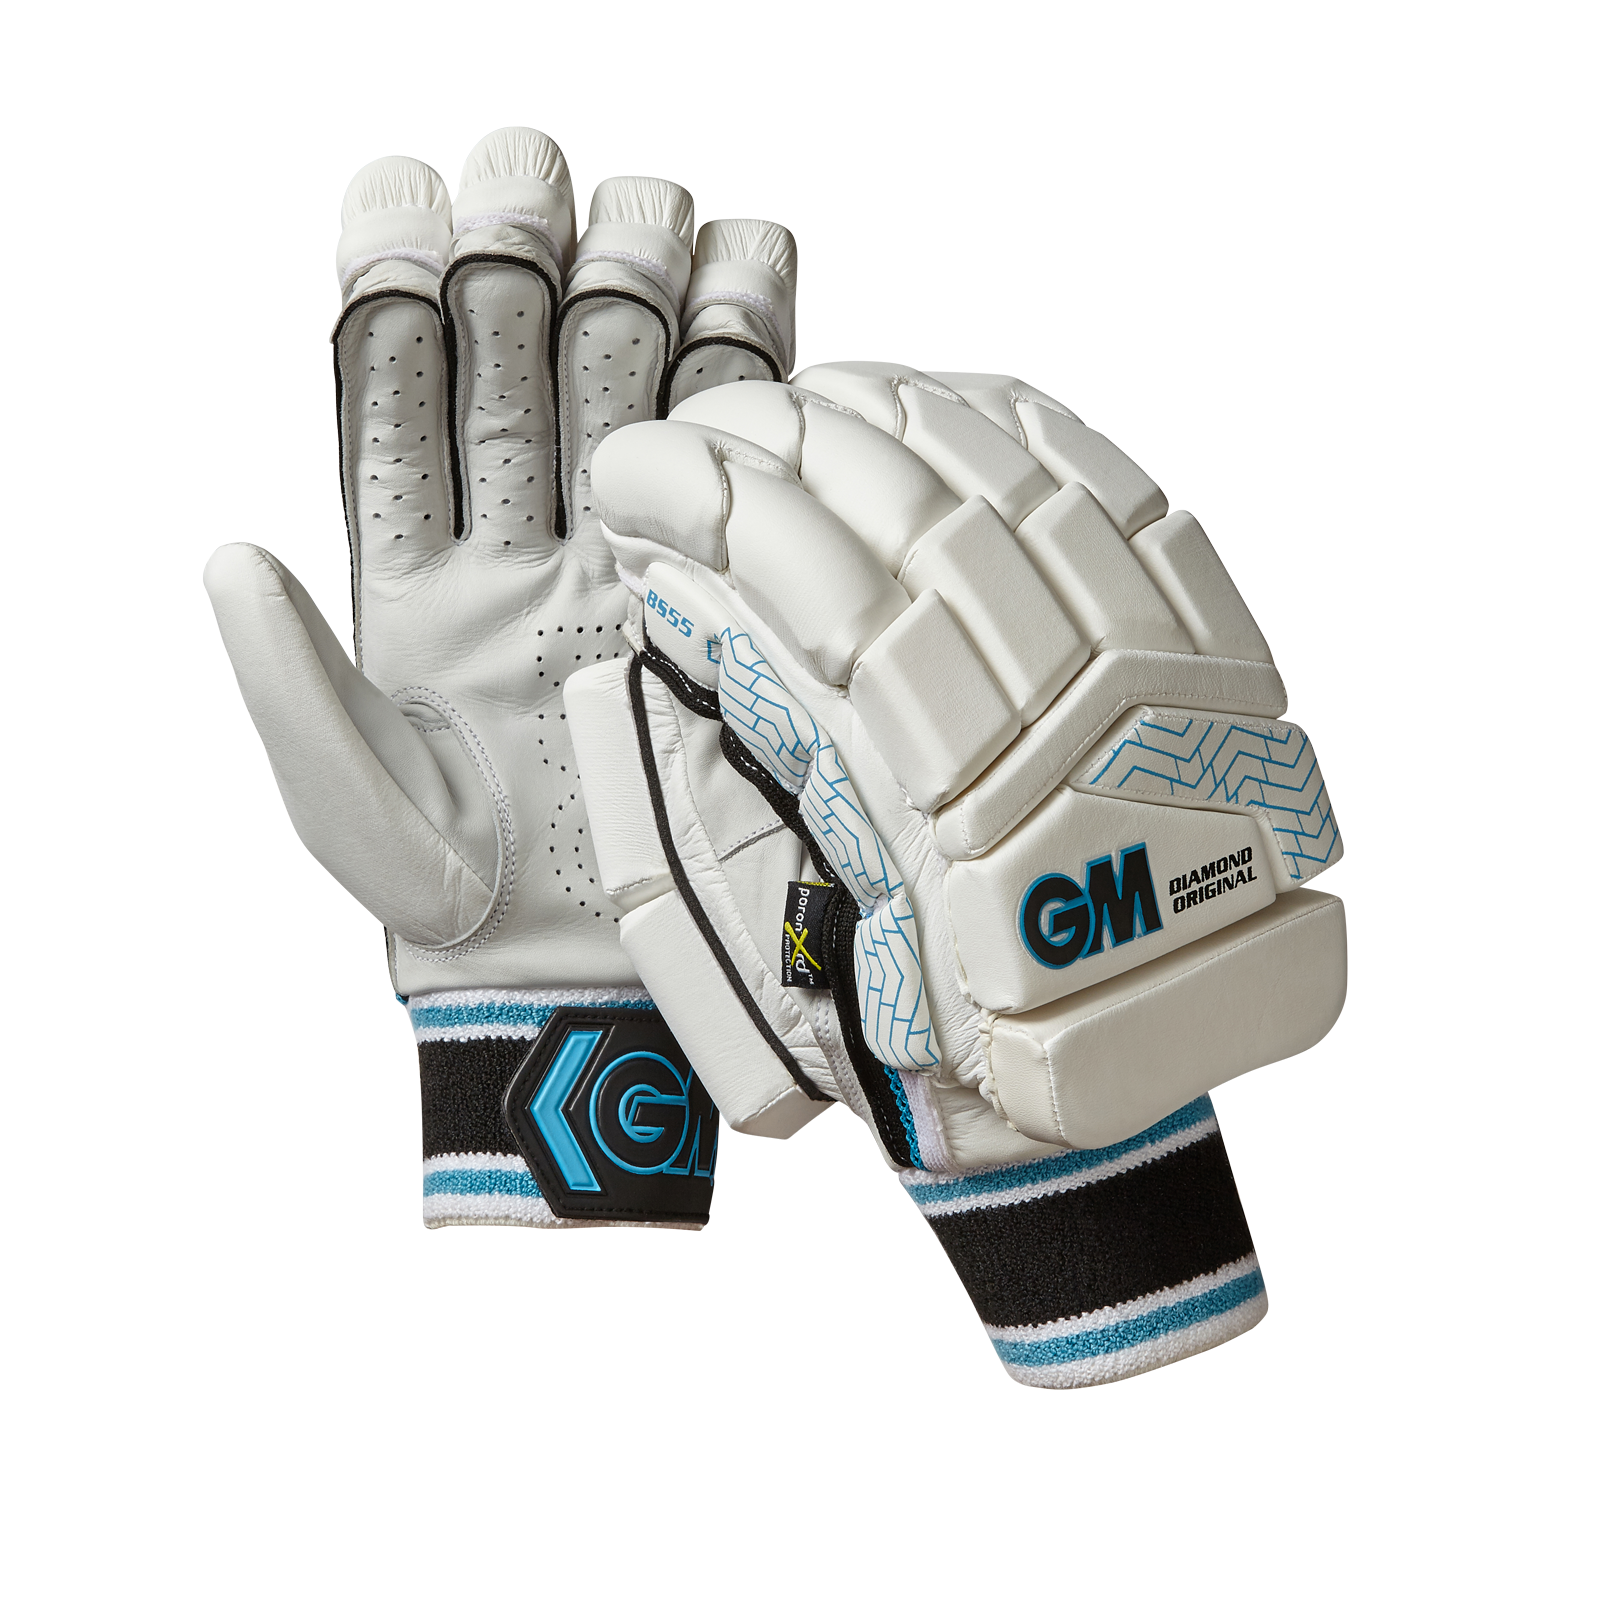 2020 Gunn and Moore Diamond Original Batting Gloves